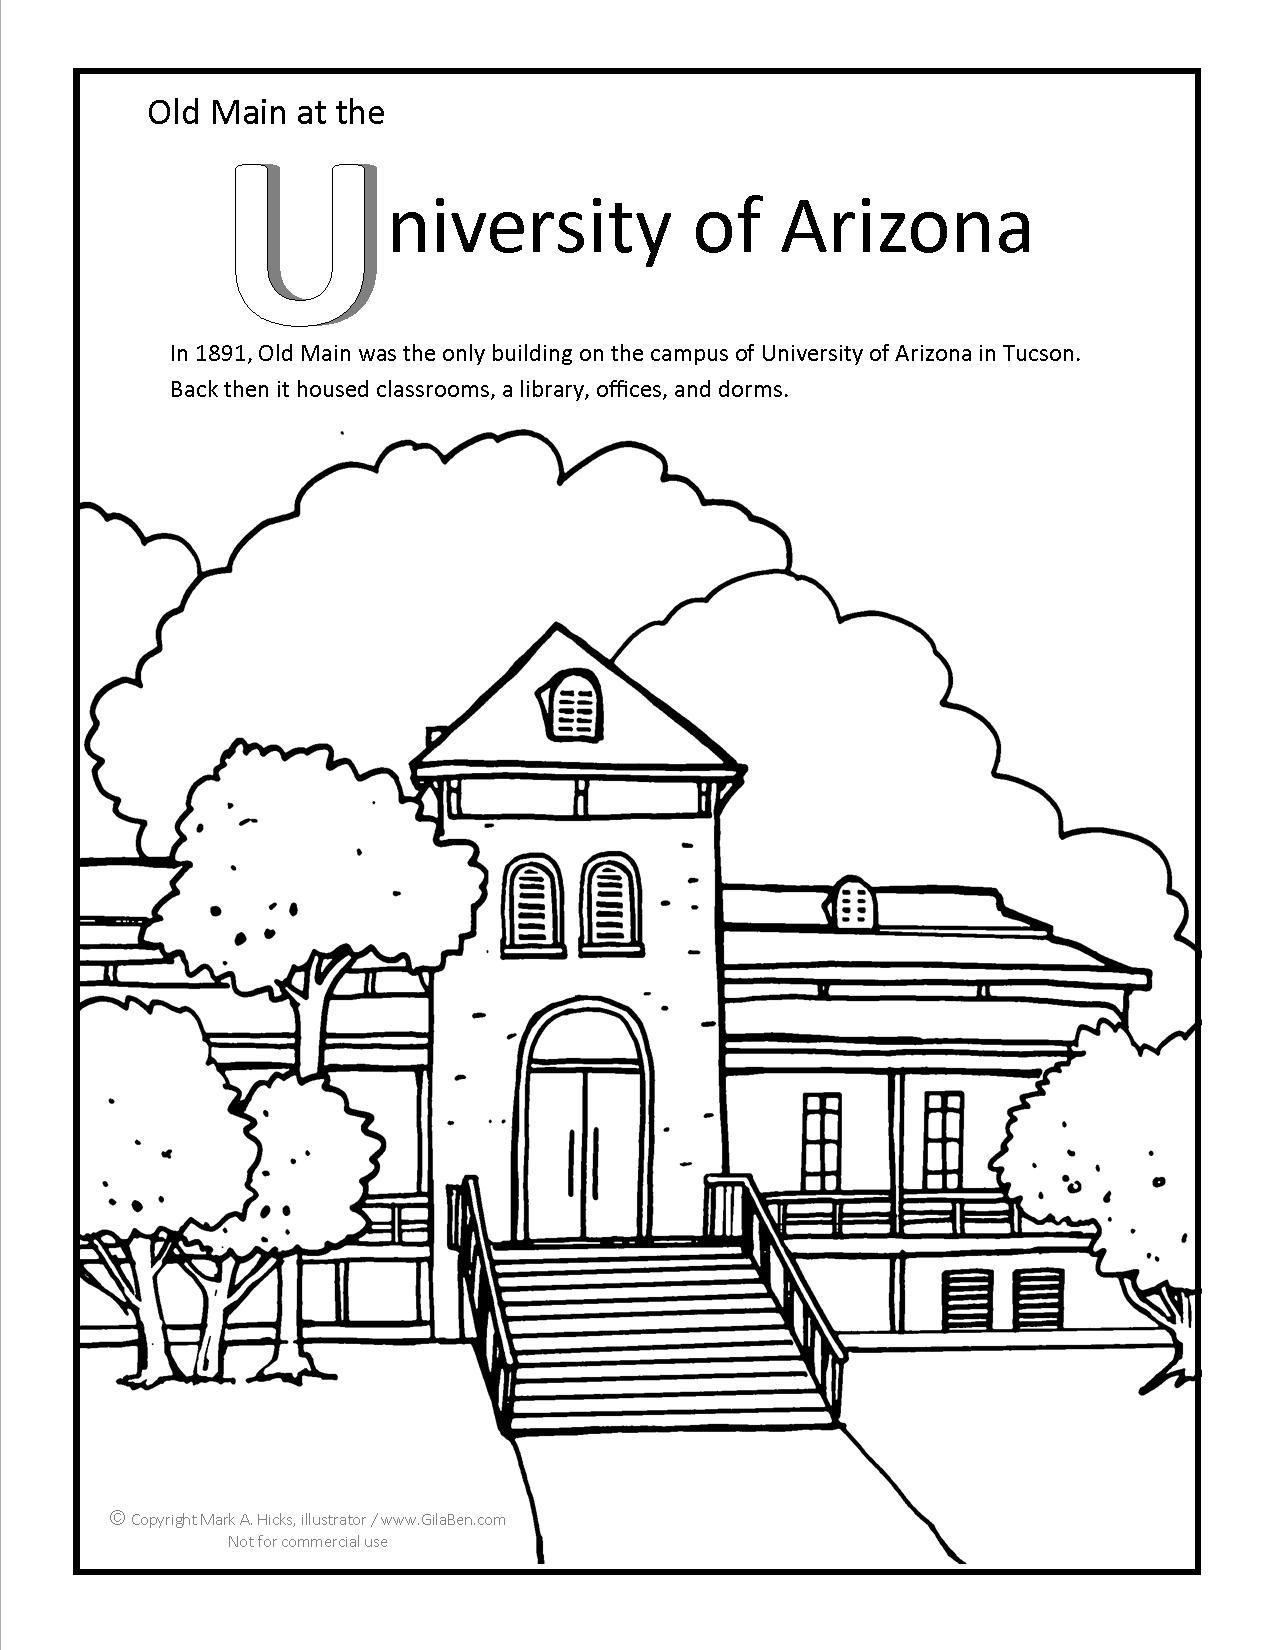 University of Arizona Old Main Coloring page at GilaBen.com ...